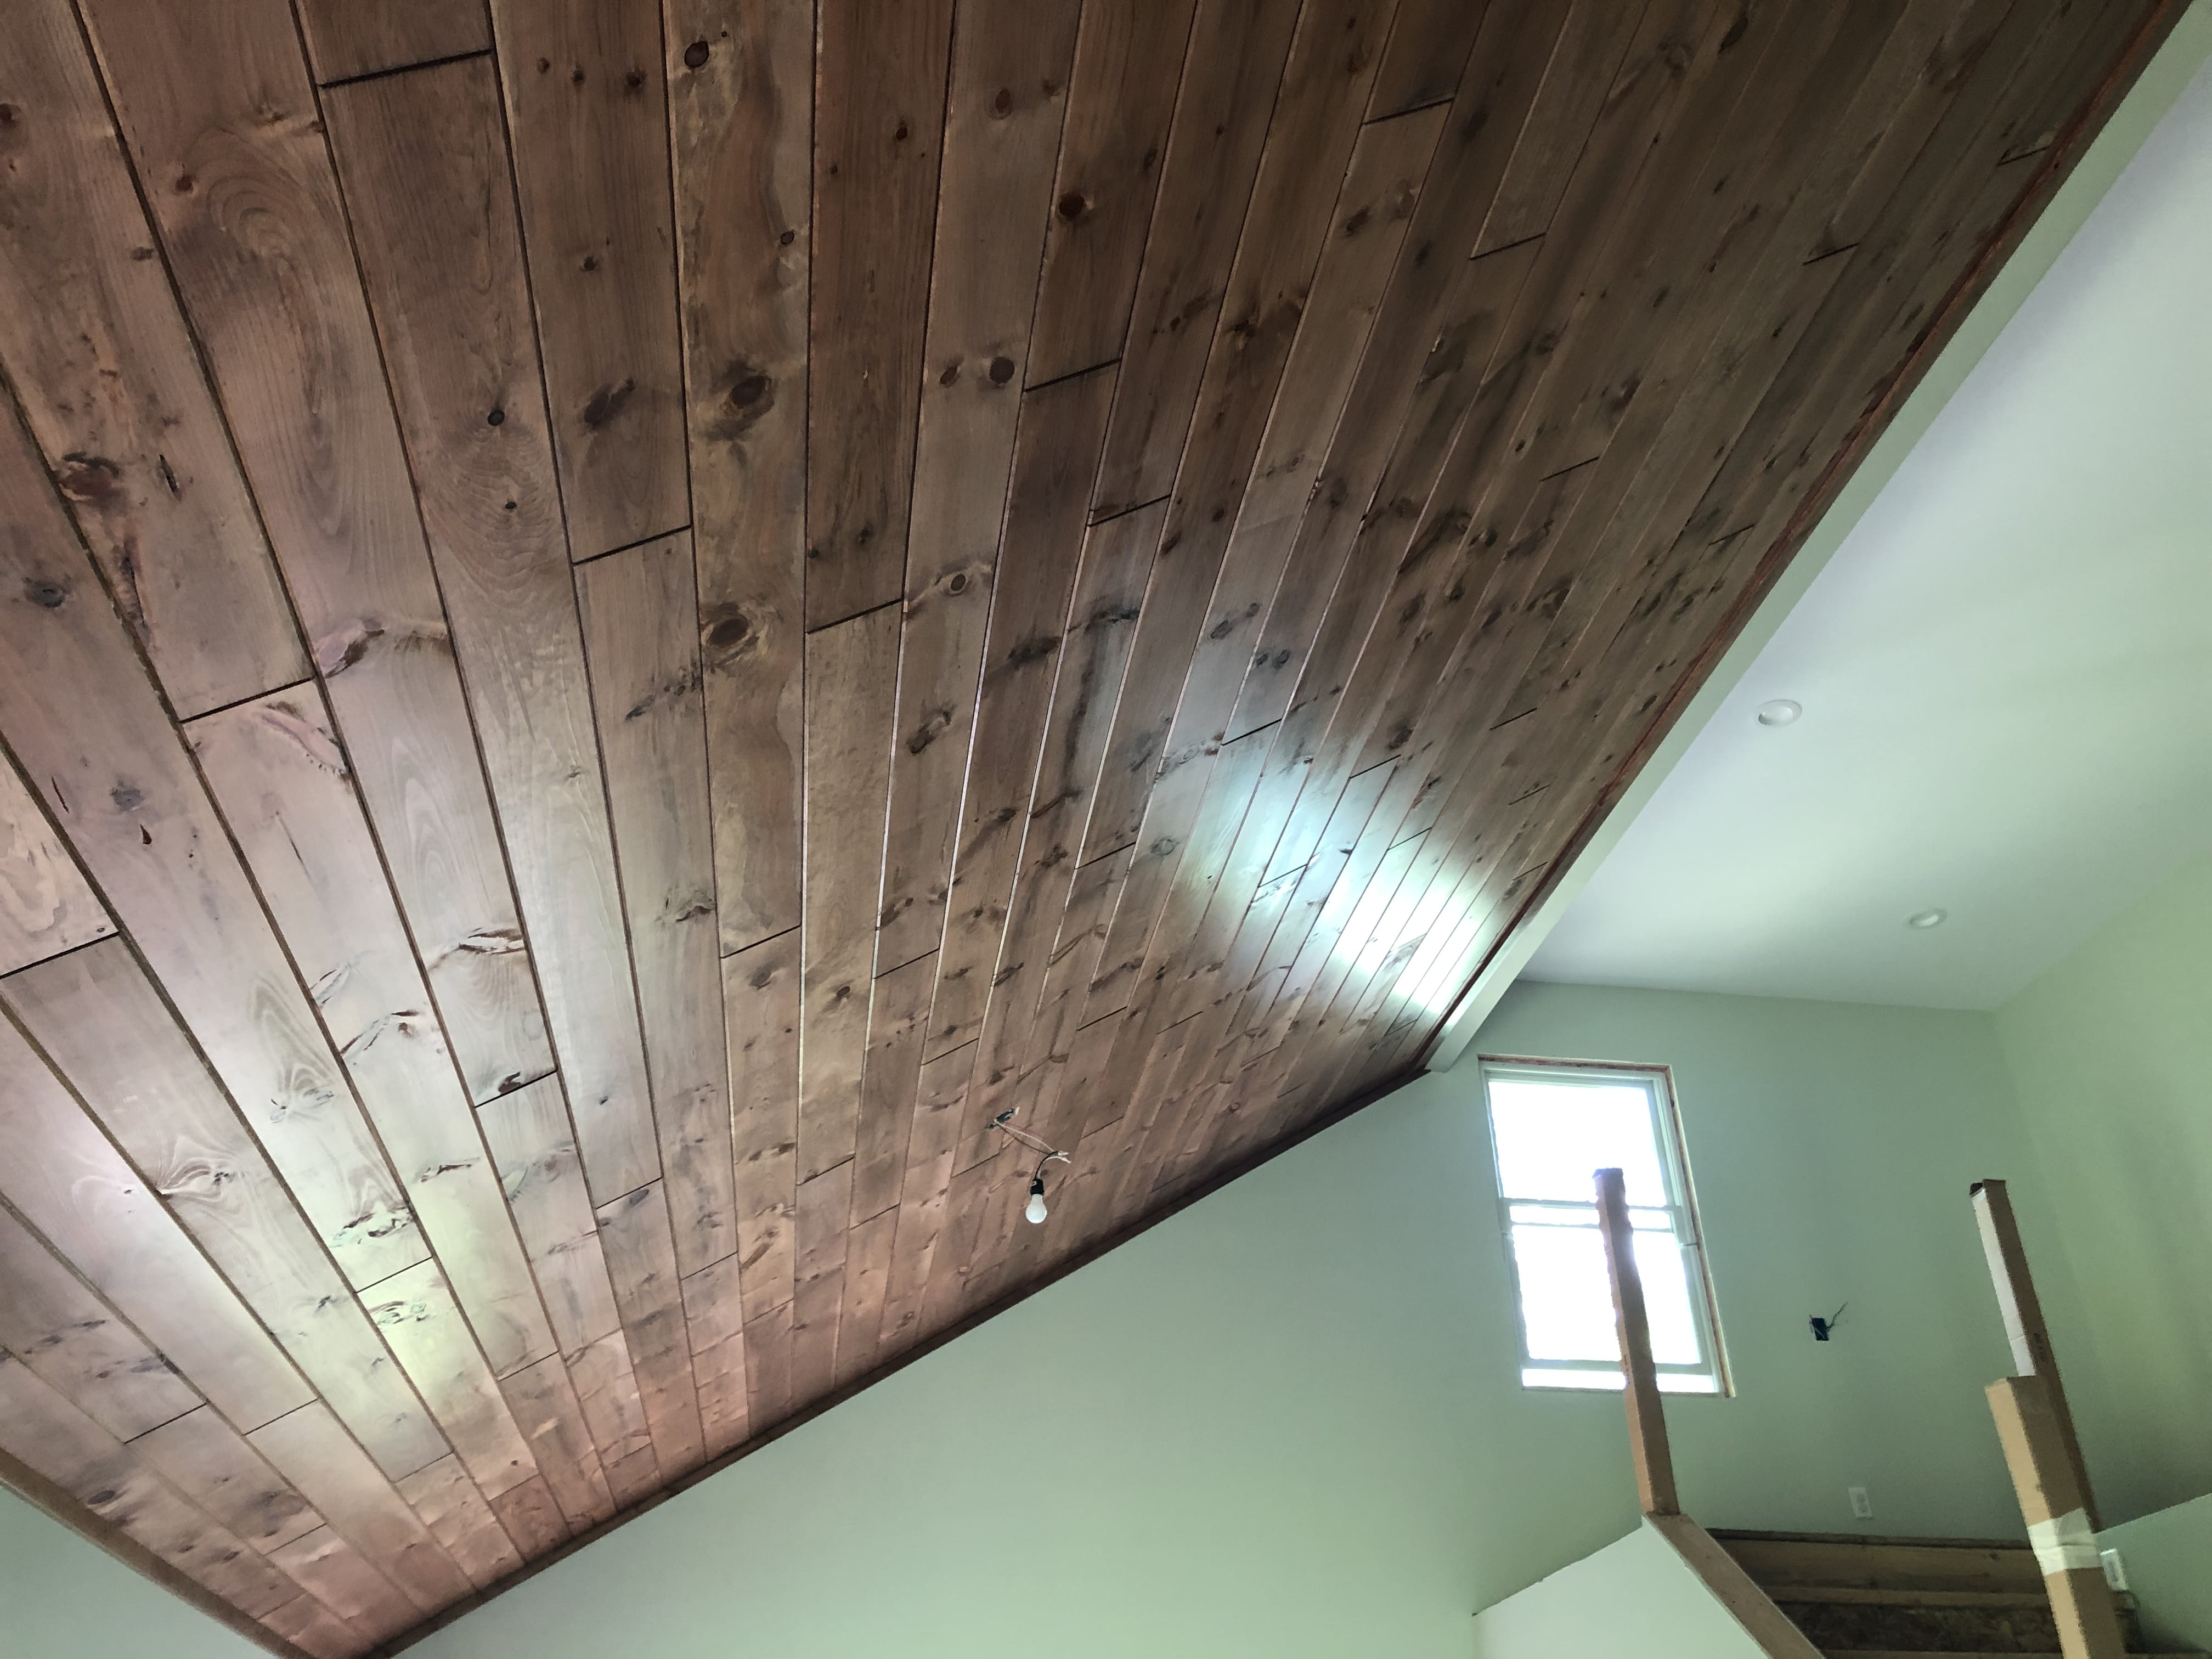 1X8 Pine Paneling in Gunstock with 1X4 Pine Trim